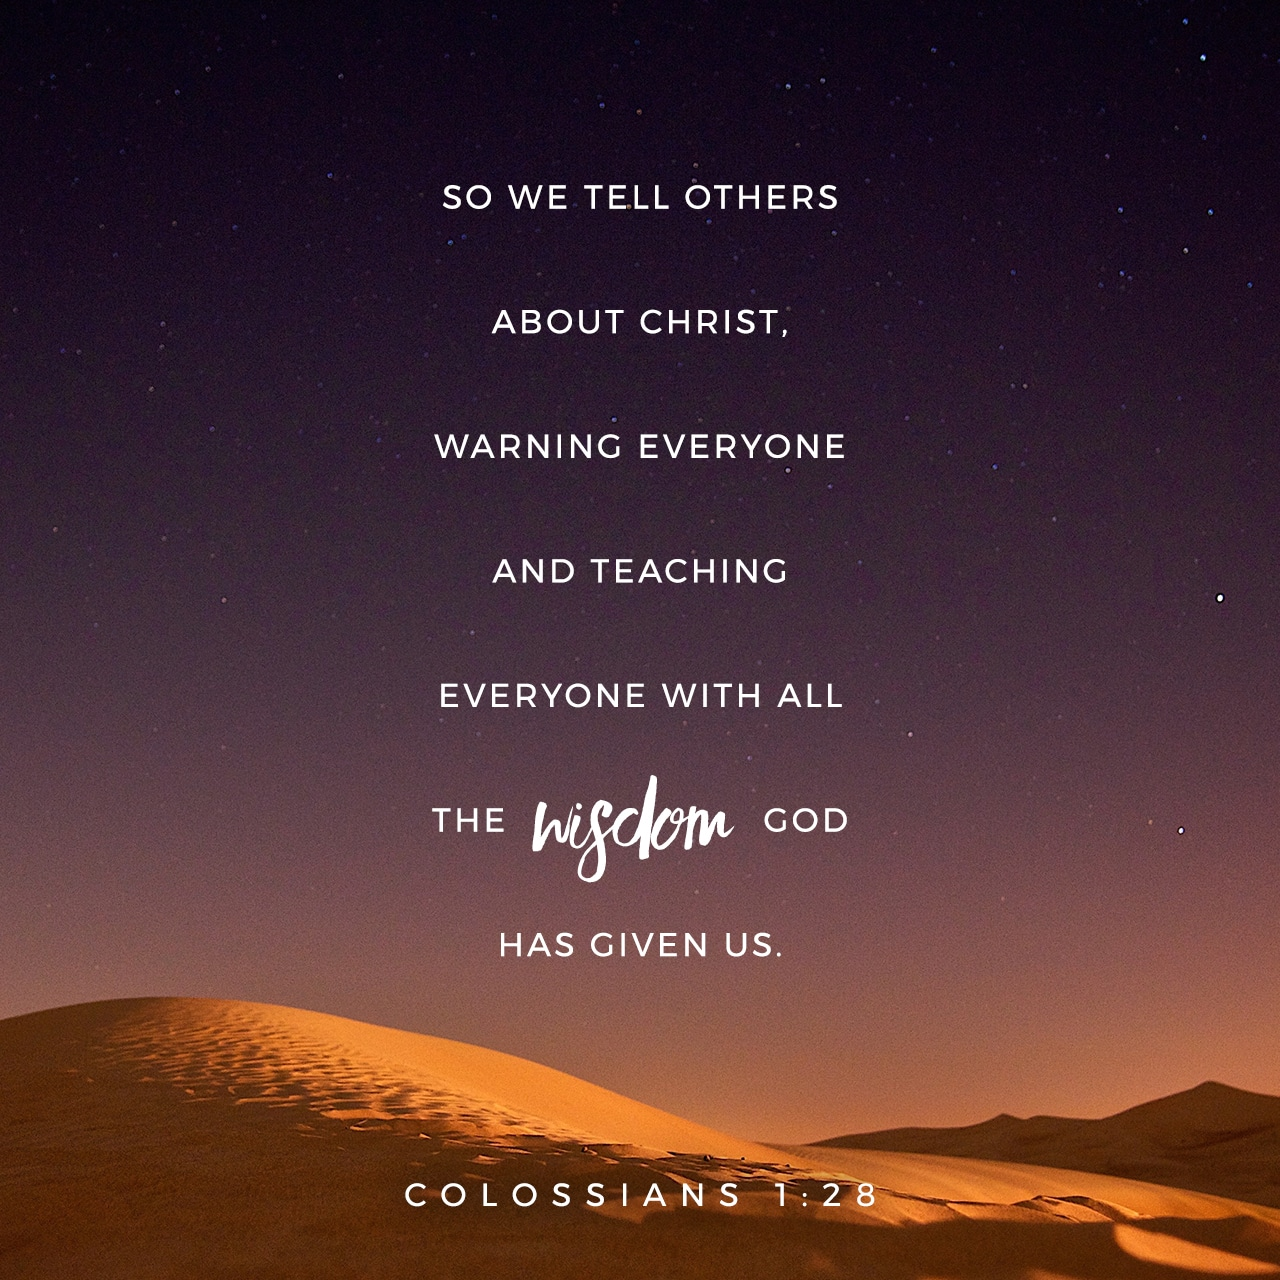 Colossians 1:28